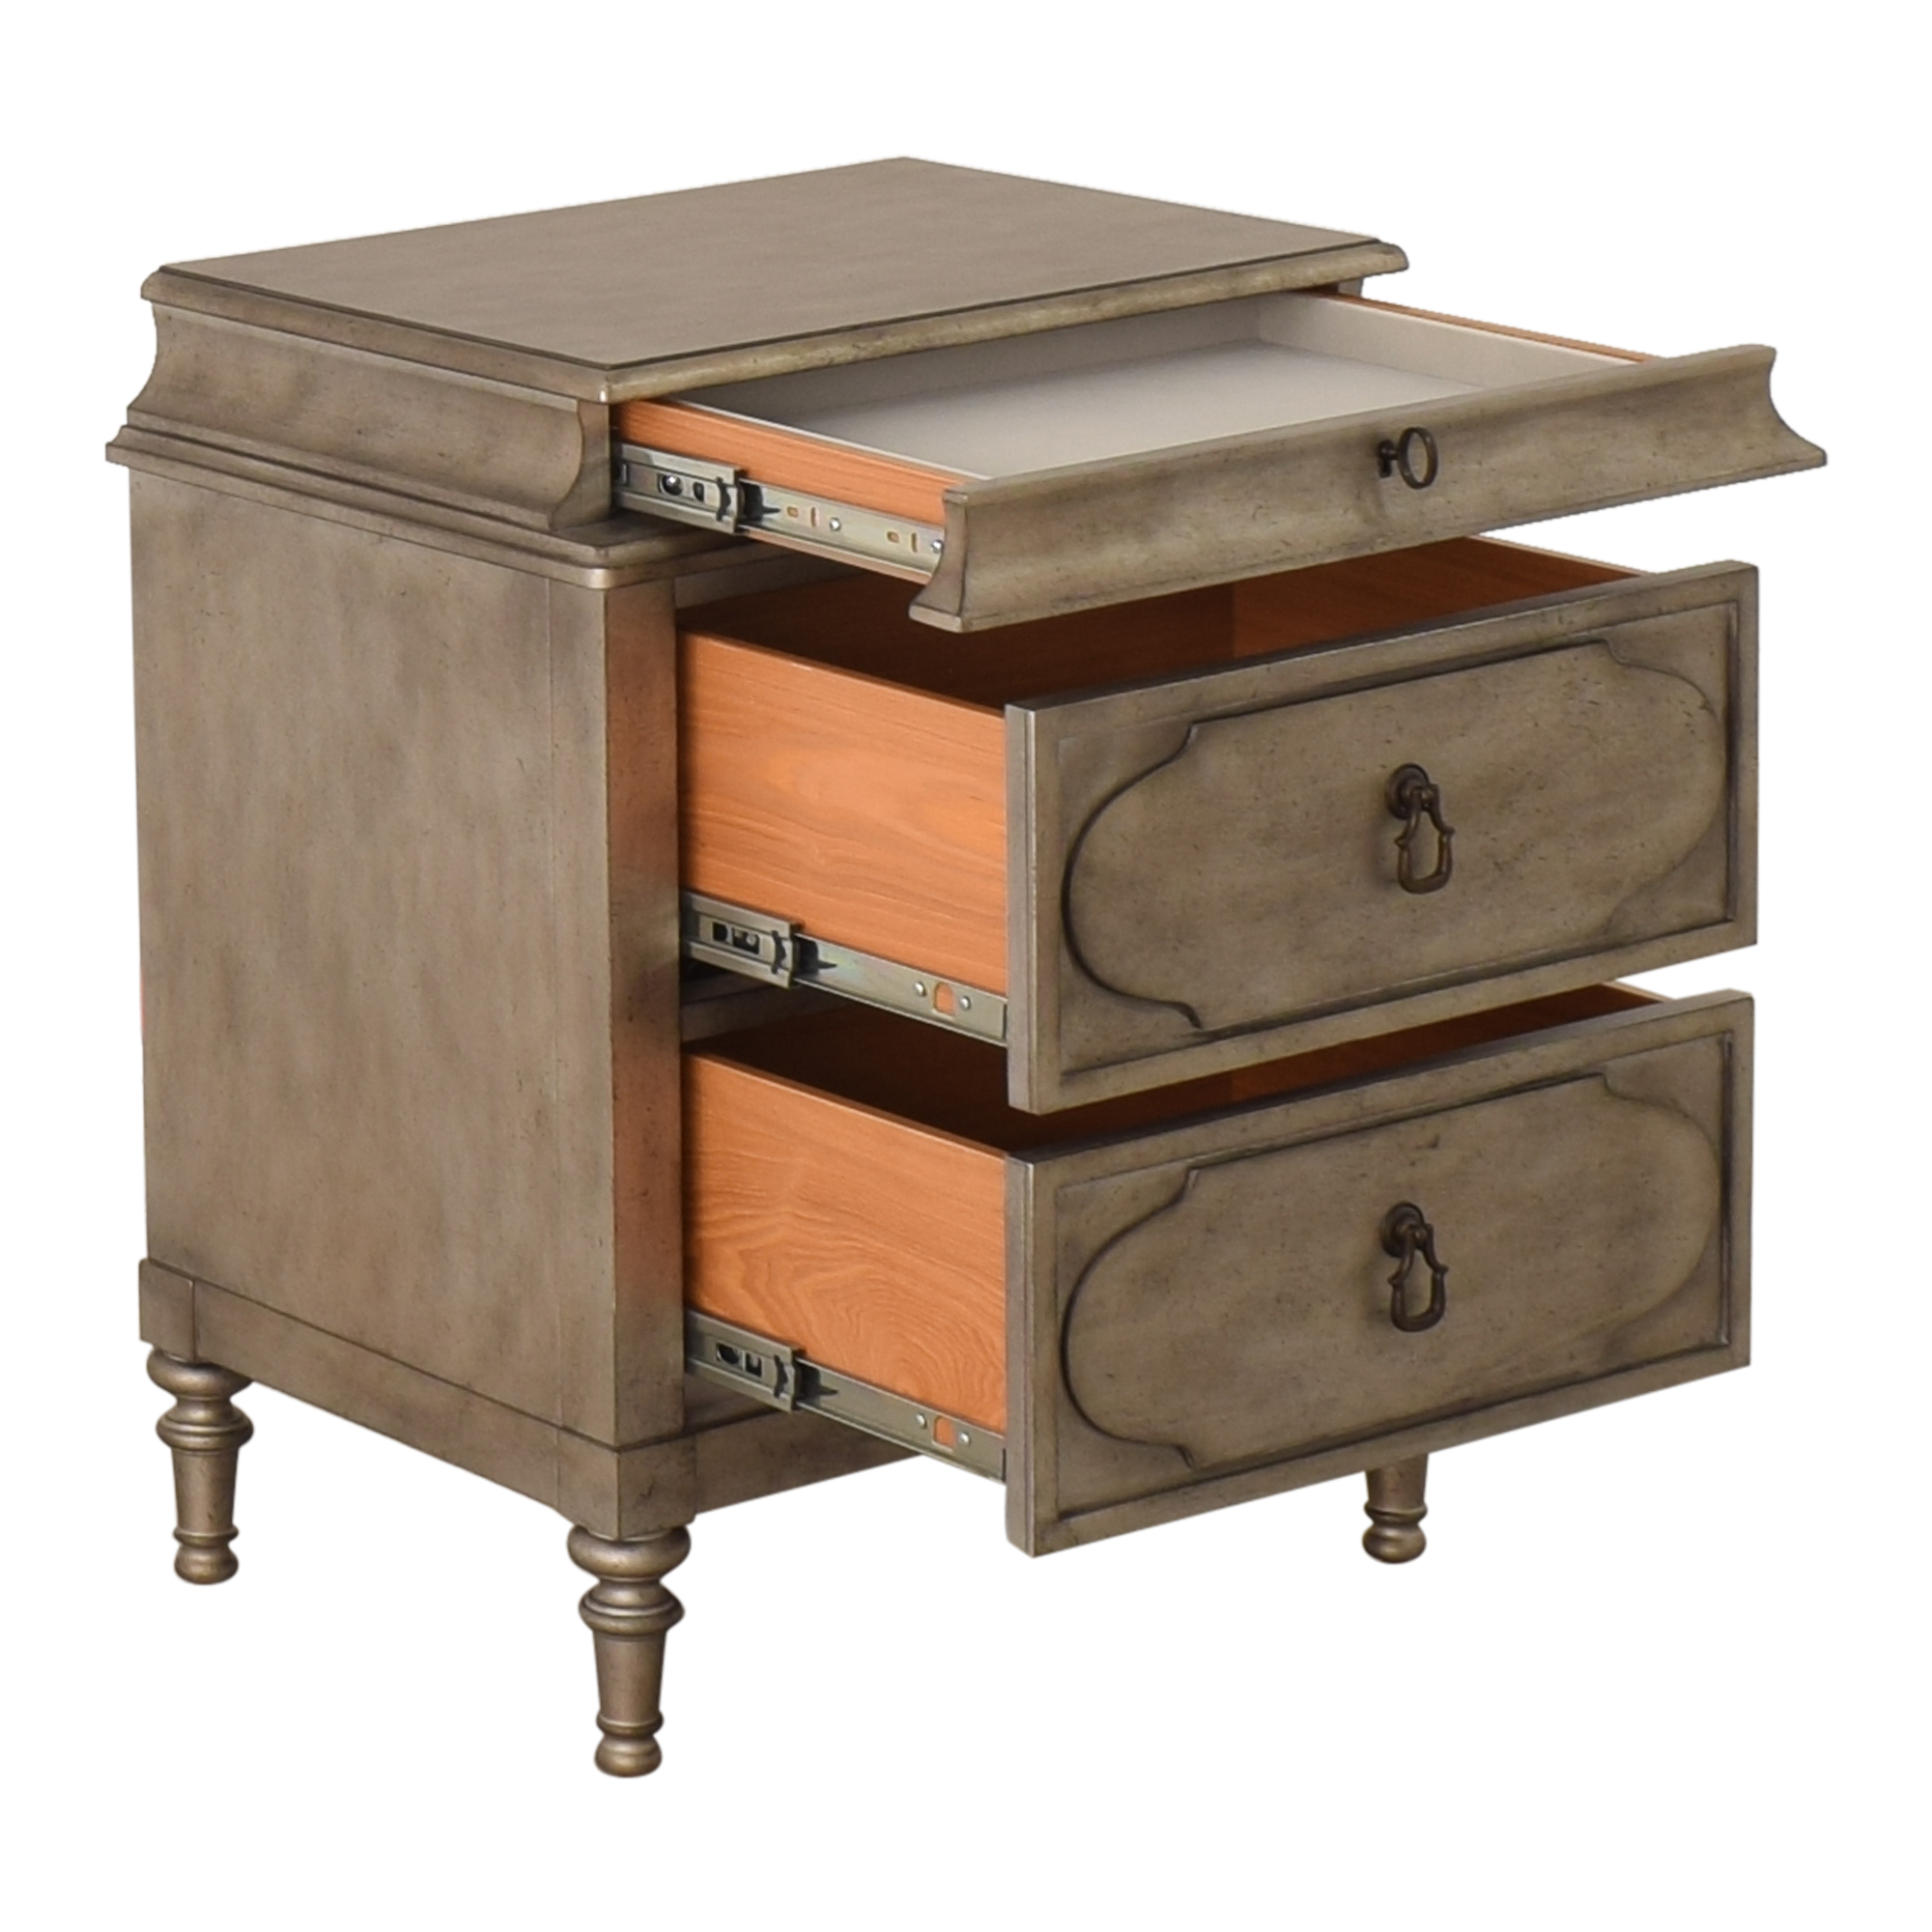 buy Universal Furniture Universal Furniture Cancale Bedside Chest online